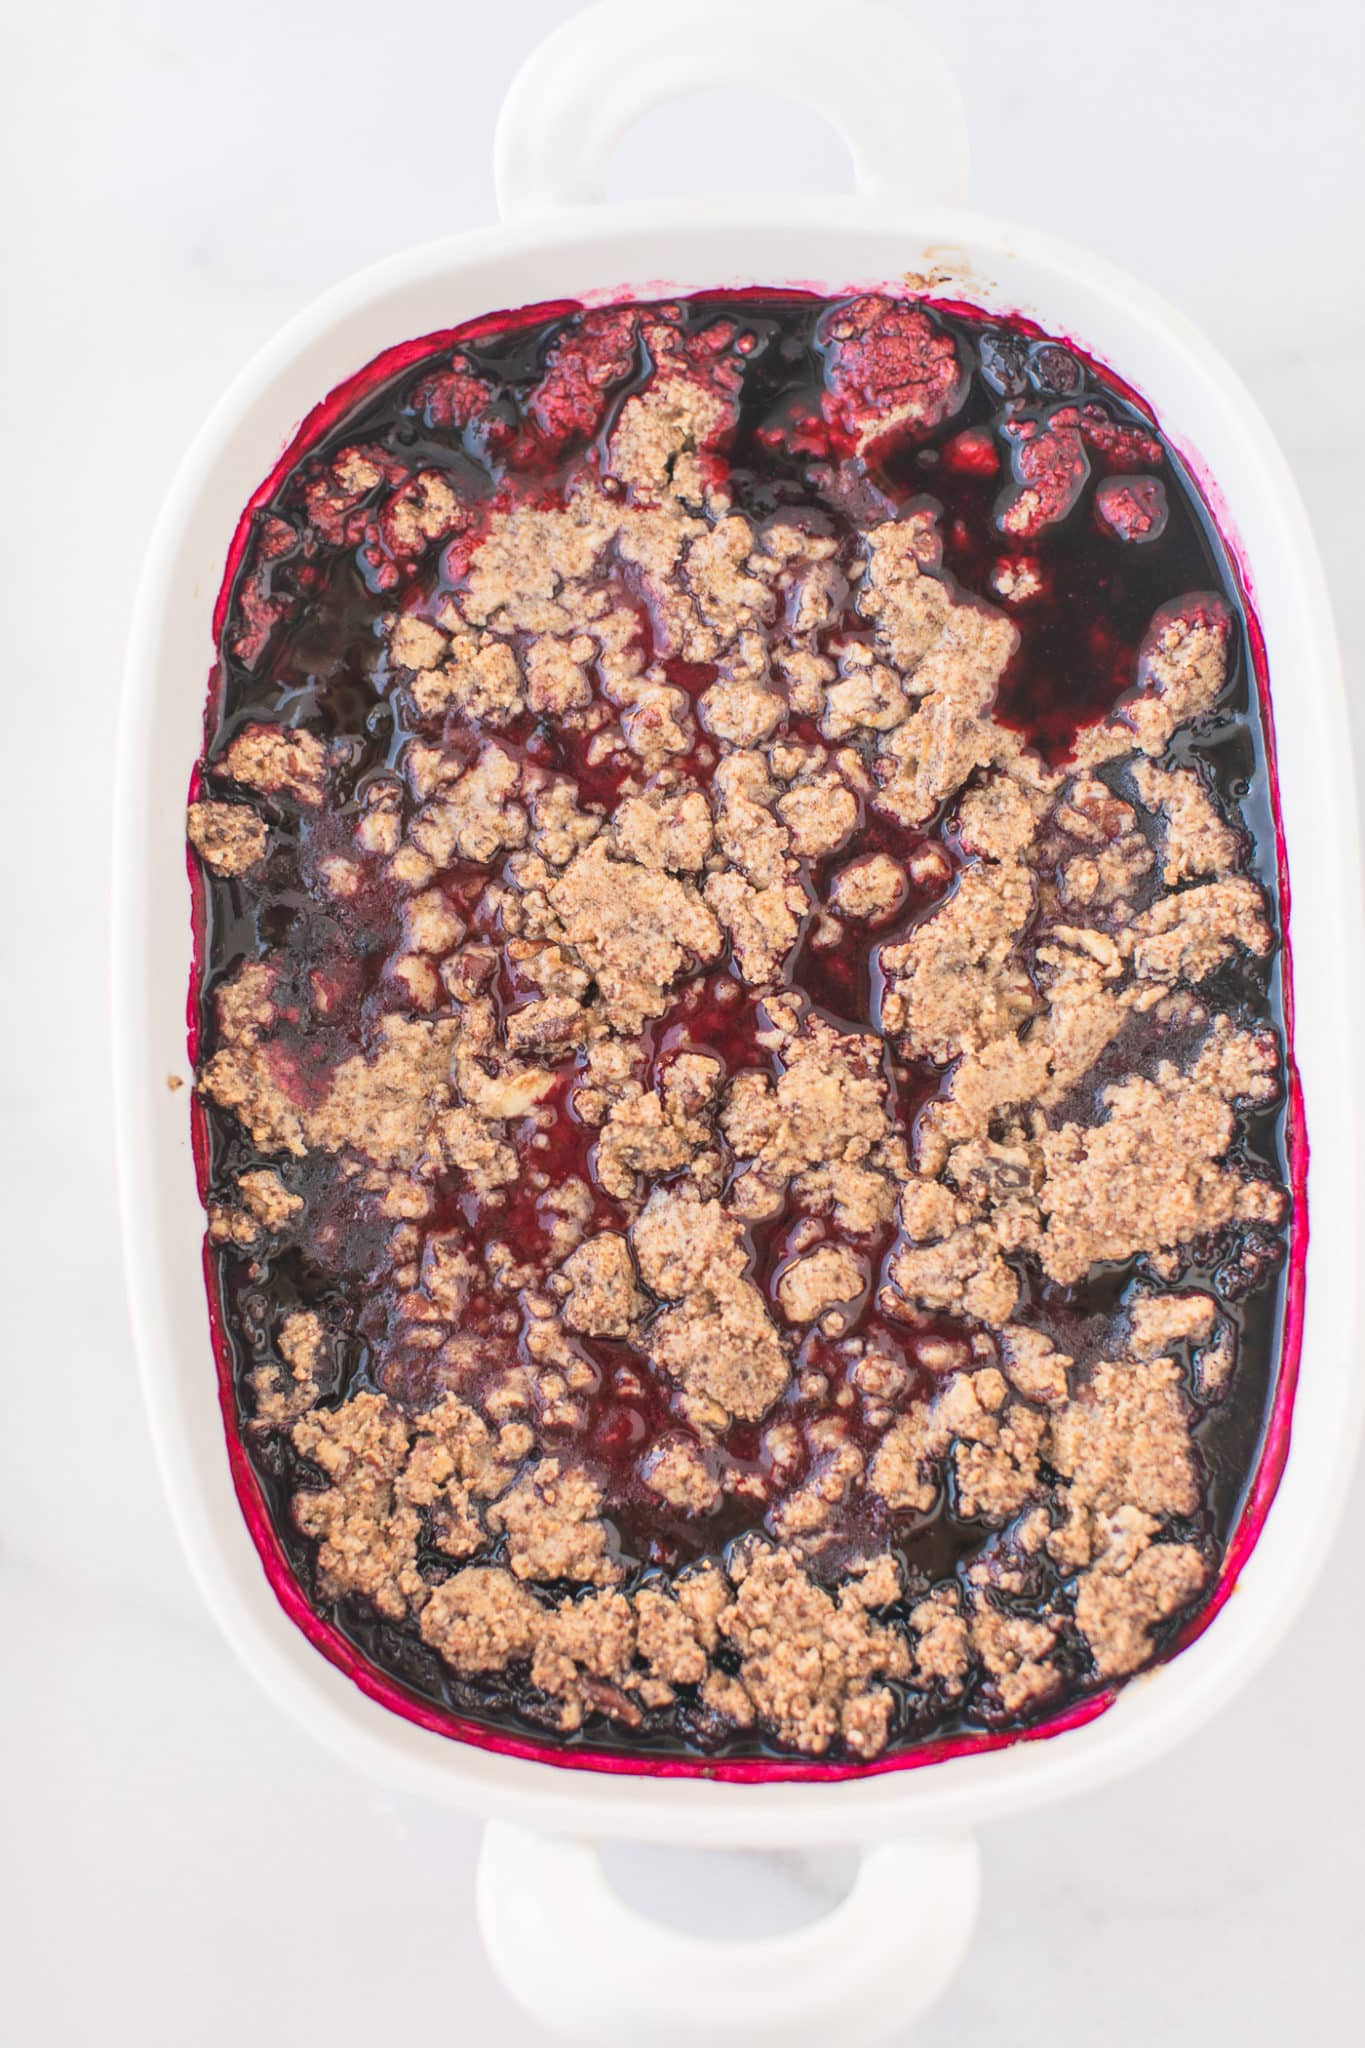 baked berry crisp in a white serving dish